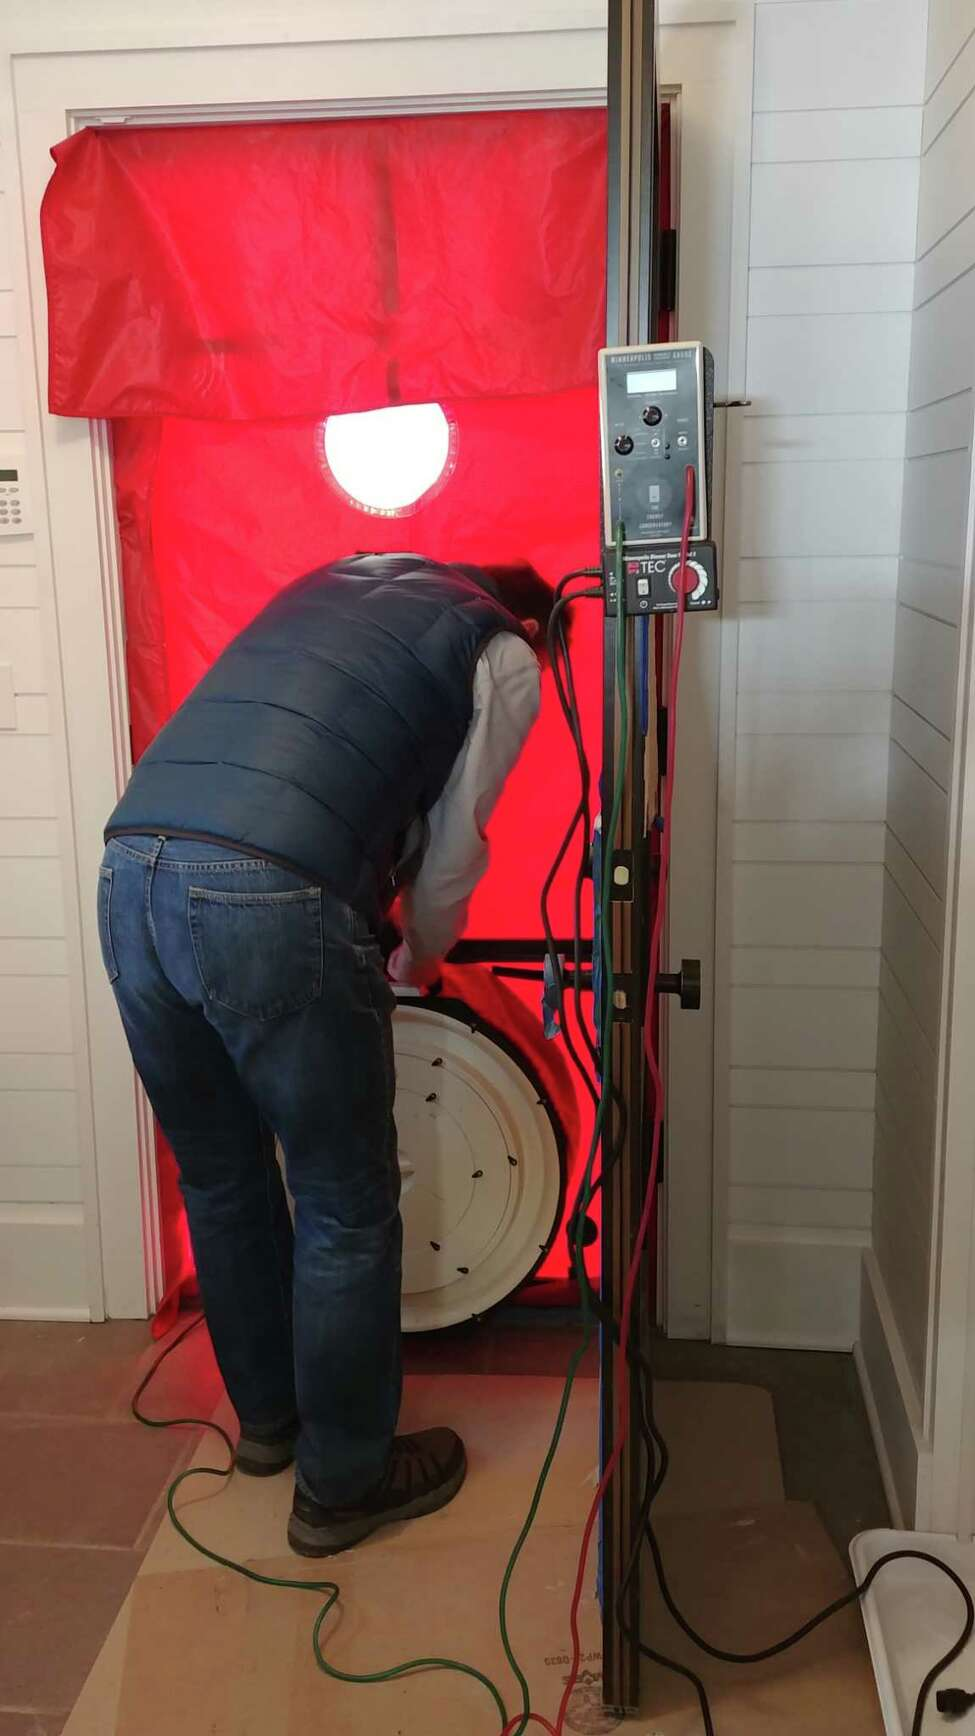 Stan Grajny conducts a blower door test on a new home built by Capital Construction in Malta, N.Y. The test involves placing a powerful fan into the frame of an exterior door in order to measure the airtightness of a structure. (Provided by Capital Construction)